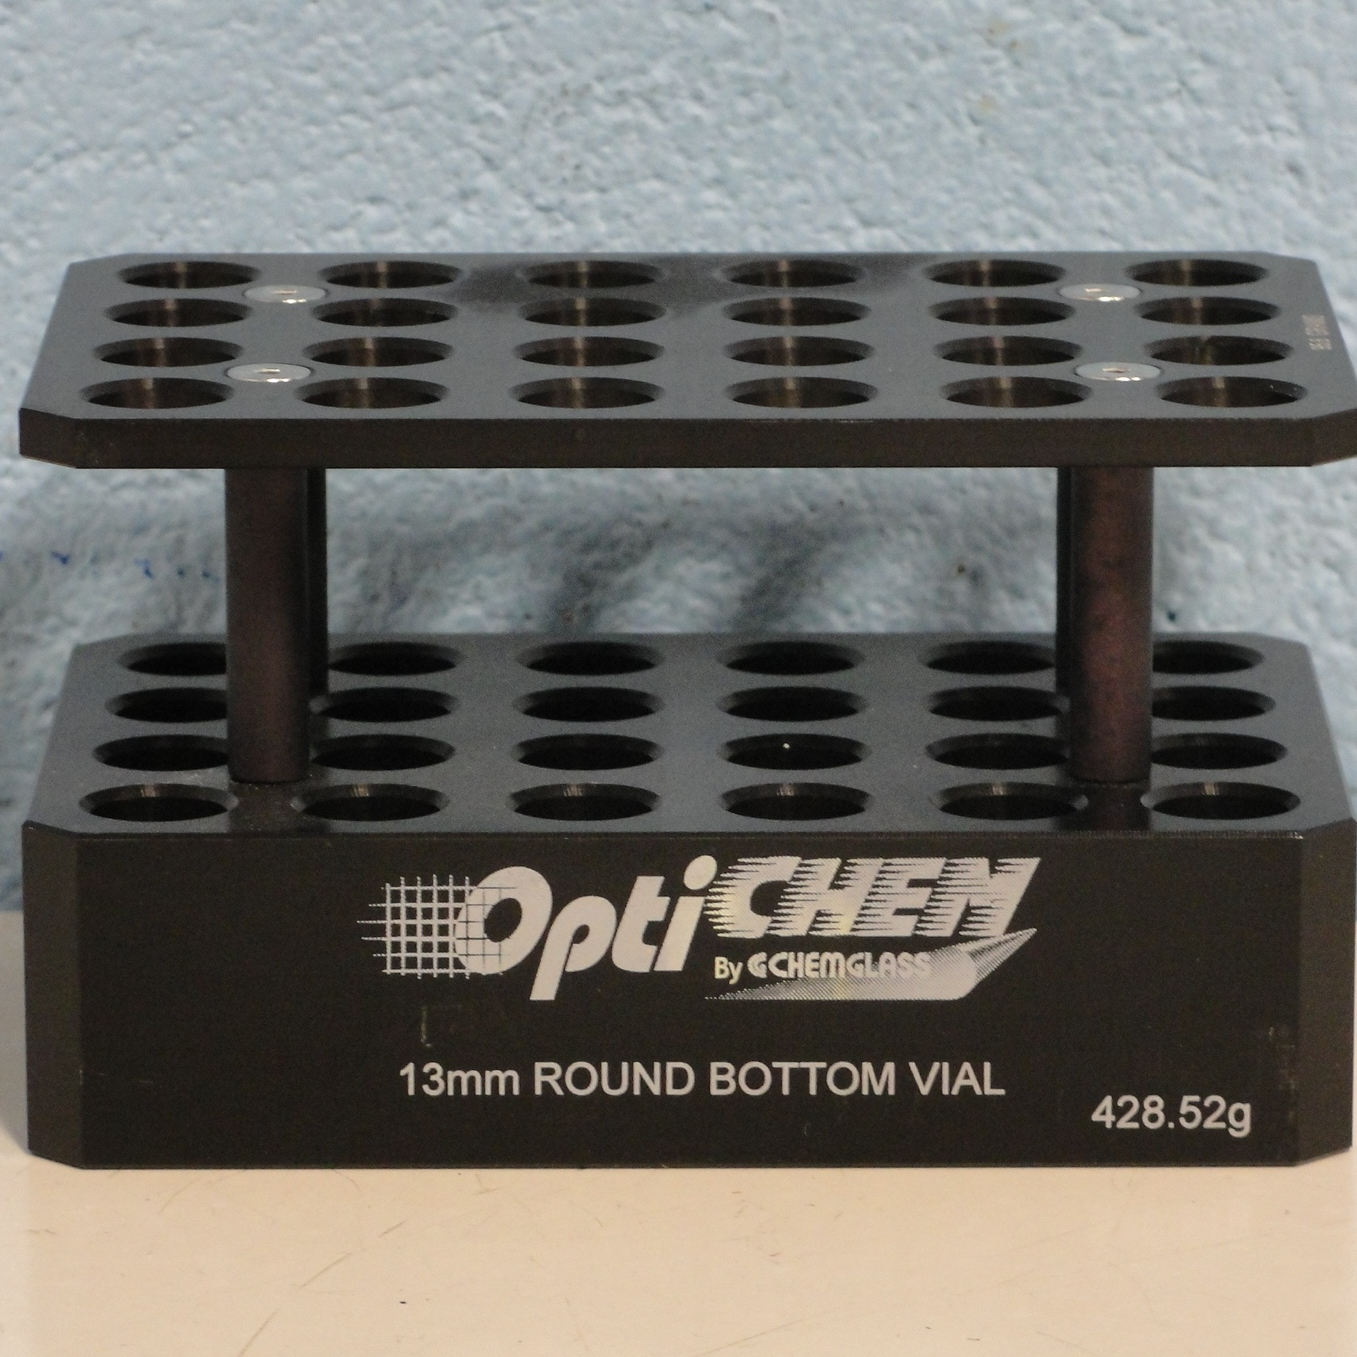 Chemglass OPTICHEM 24-Position 2-Tier Round Bottom Vial Holder Image